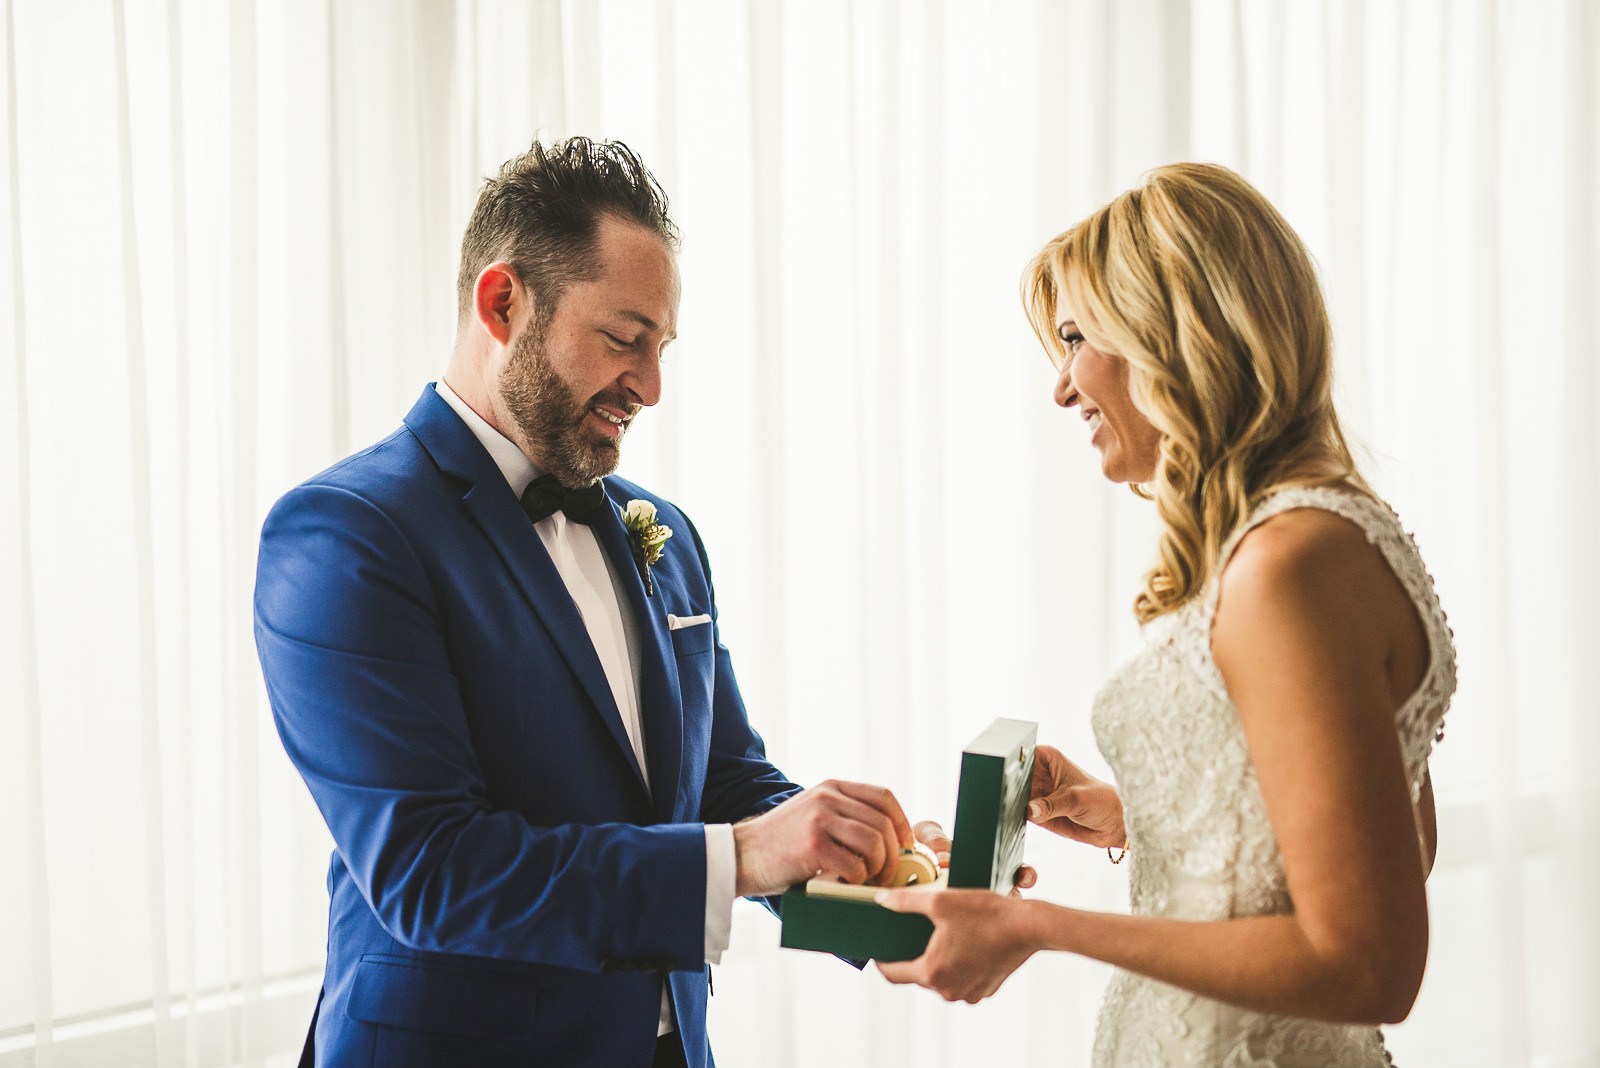 18 gift for groom on wedding day - Chicago Wedding Photography at Gallery 1028 // Courtnie + David